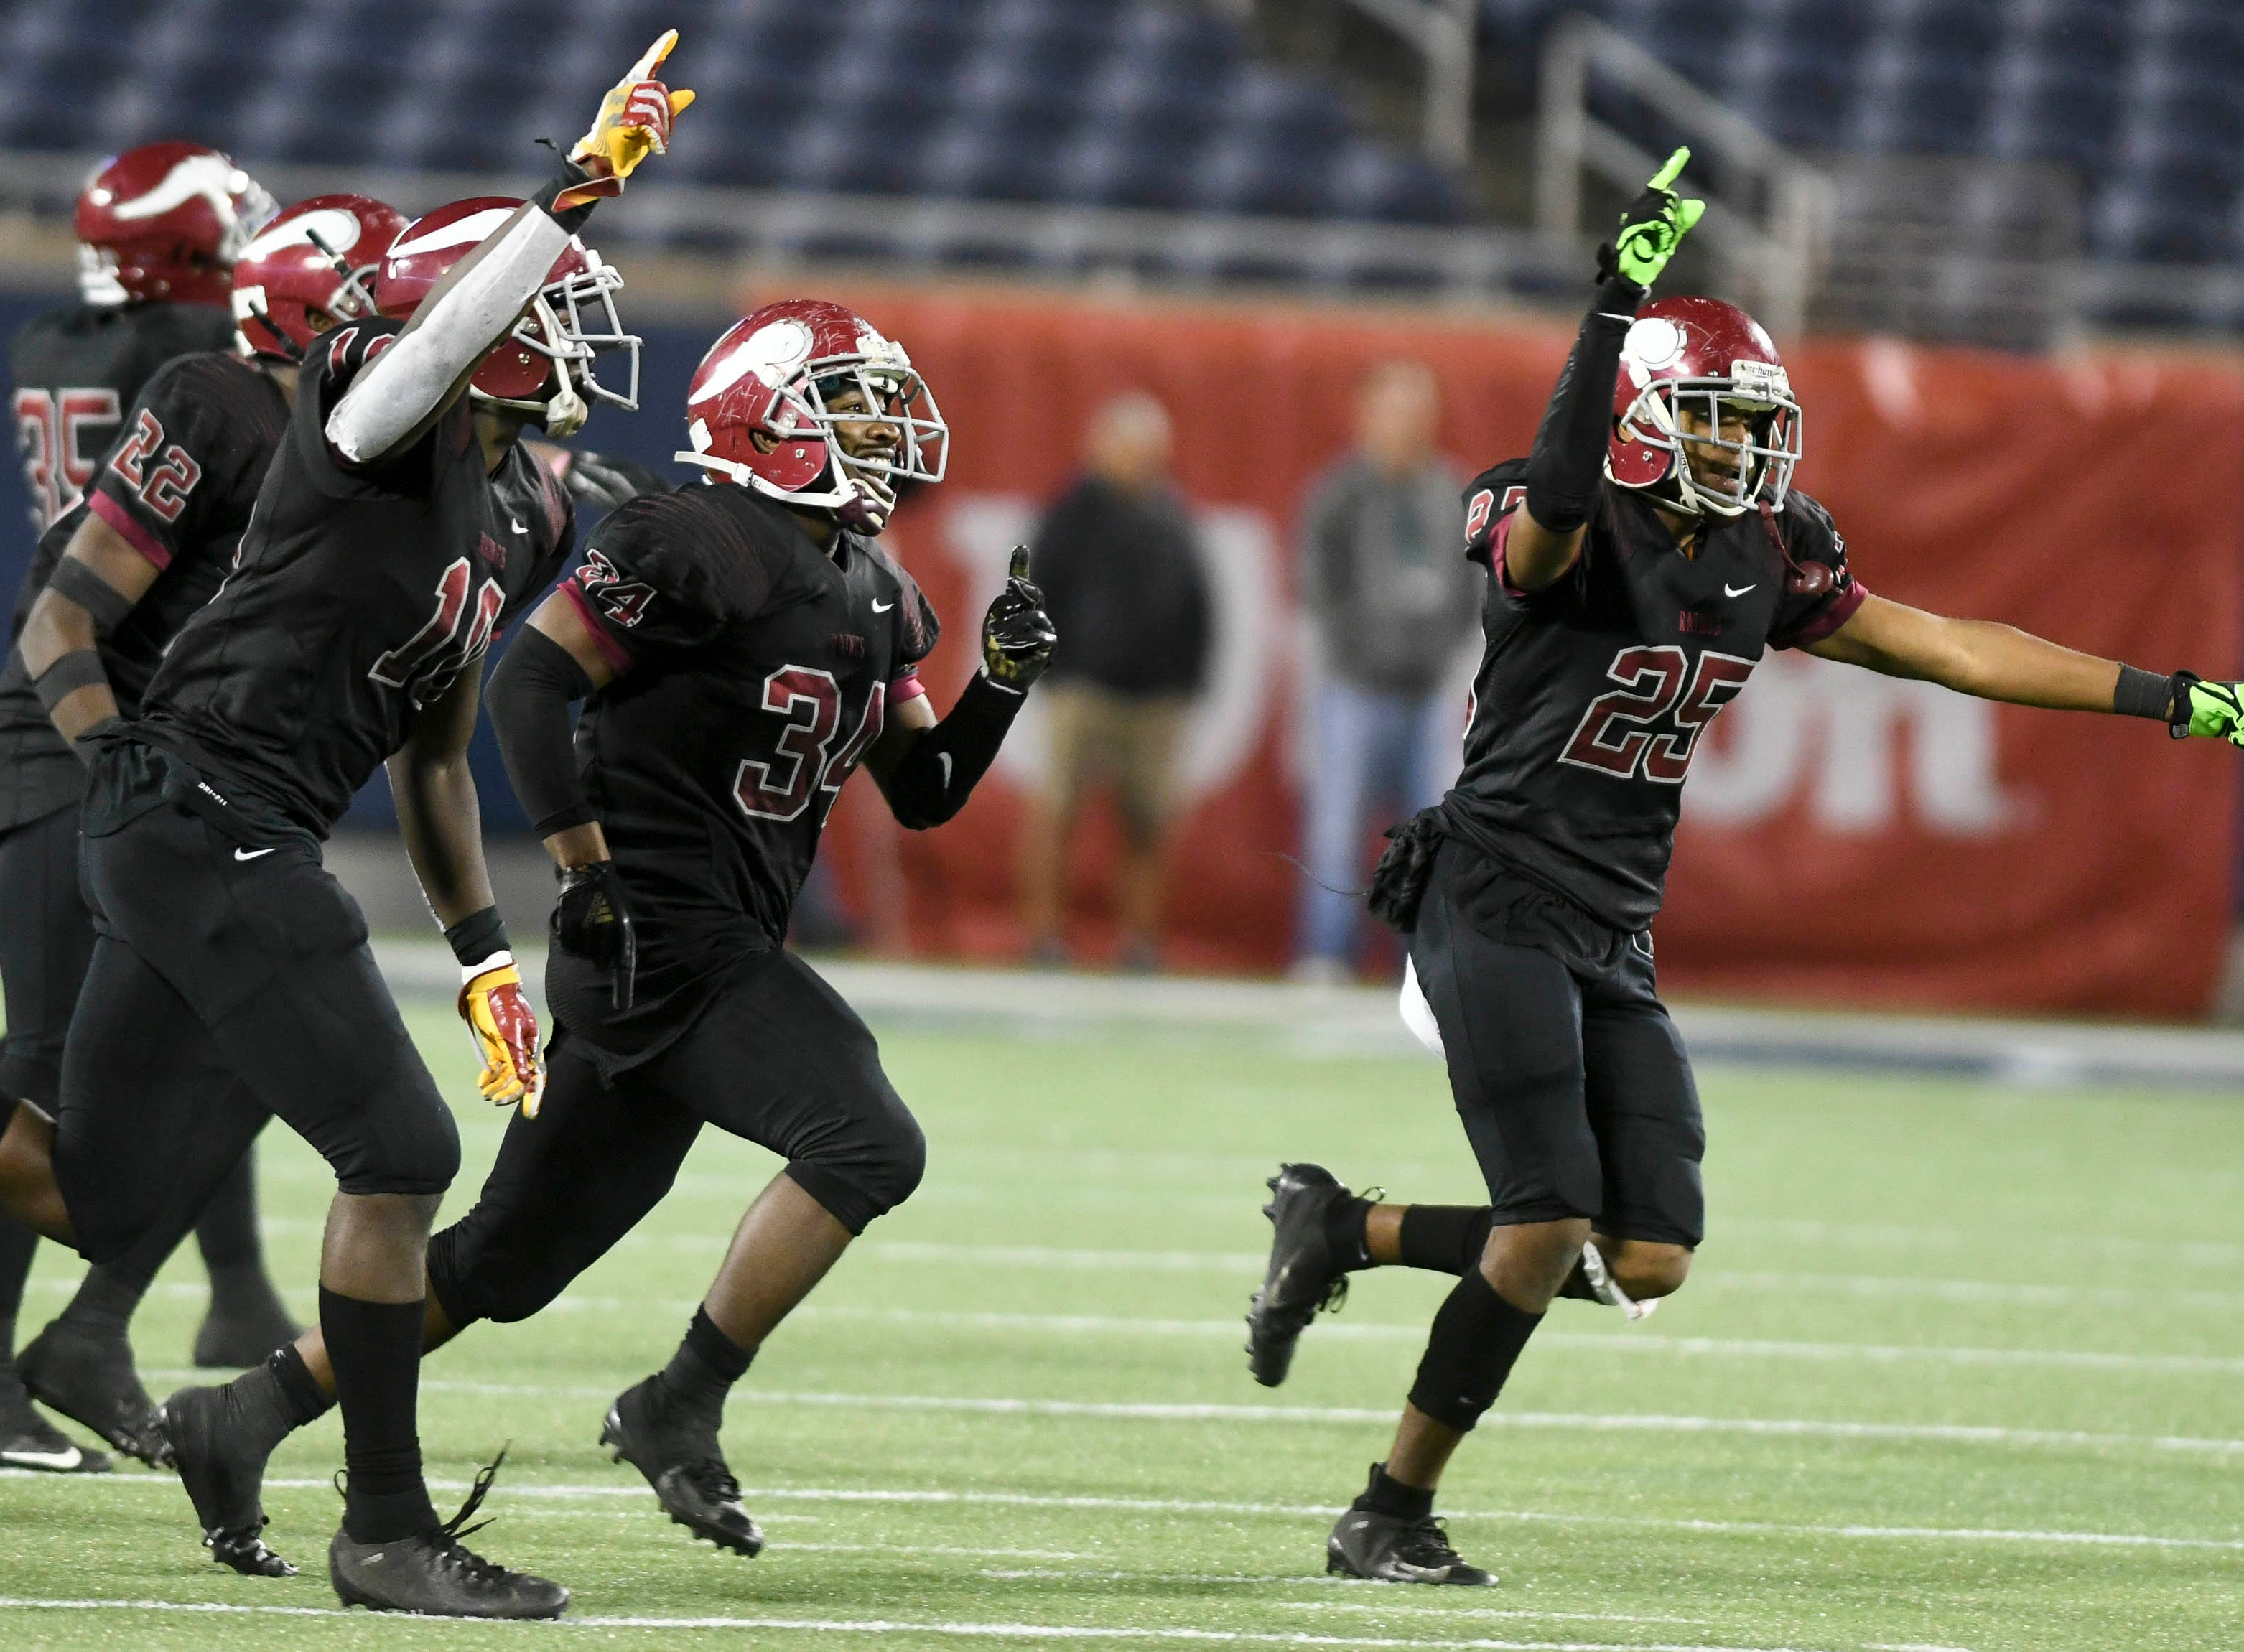 Raines players celebrate after interception a Cocoa pass during Thursday's Class 4A football state championship.